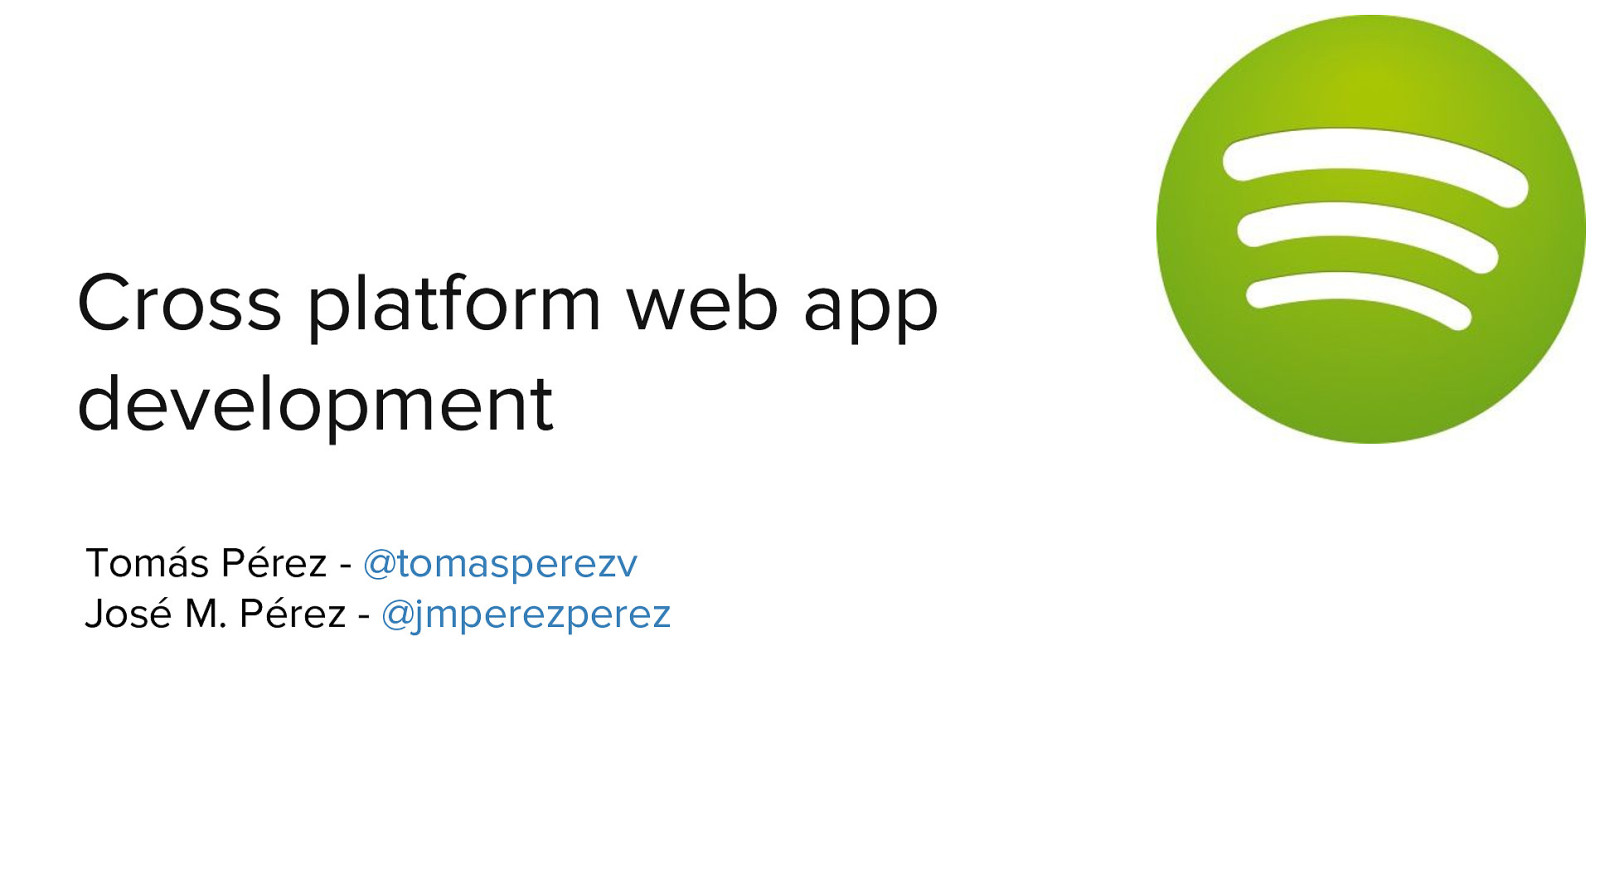 Cross platform web app development